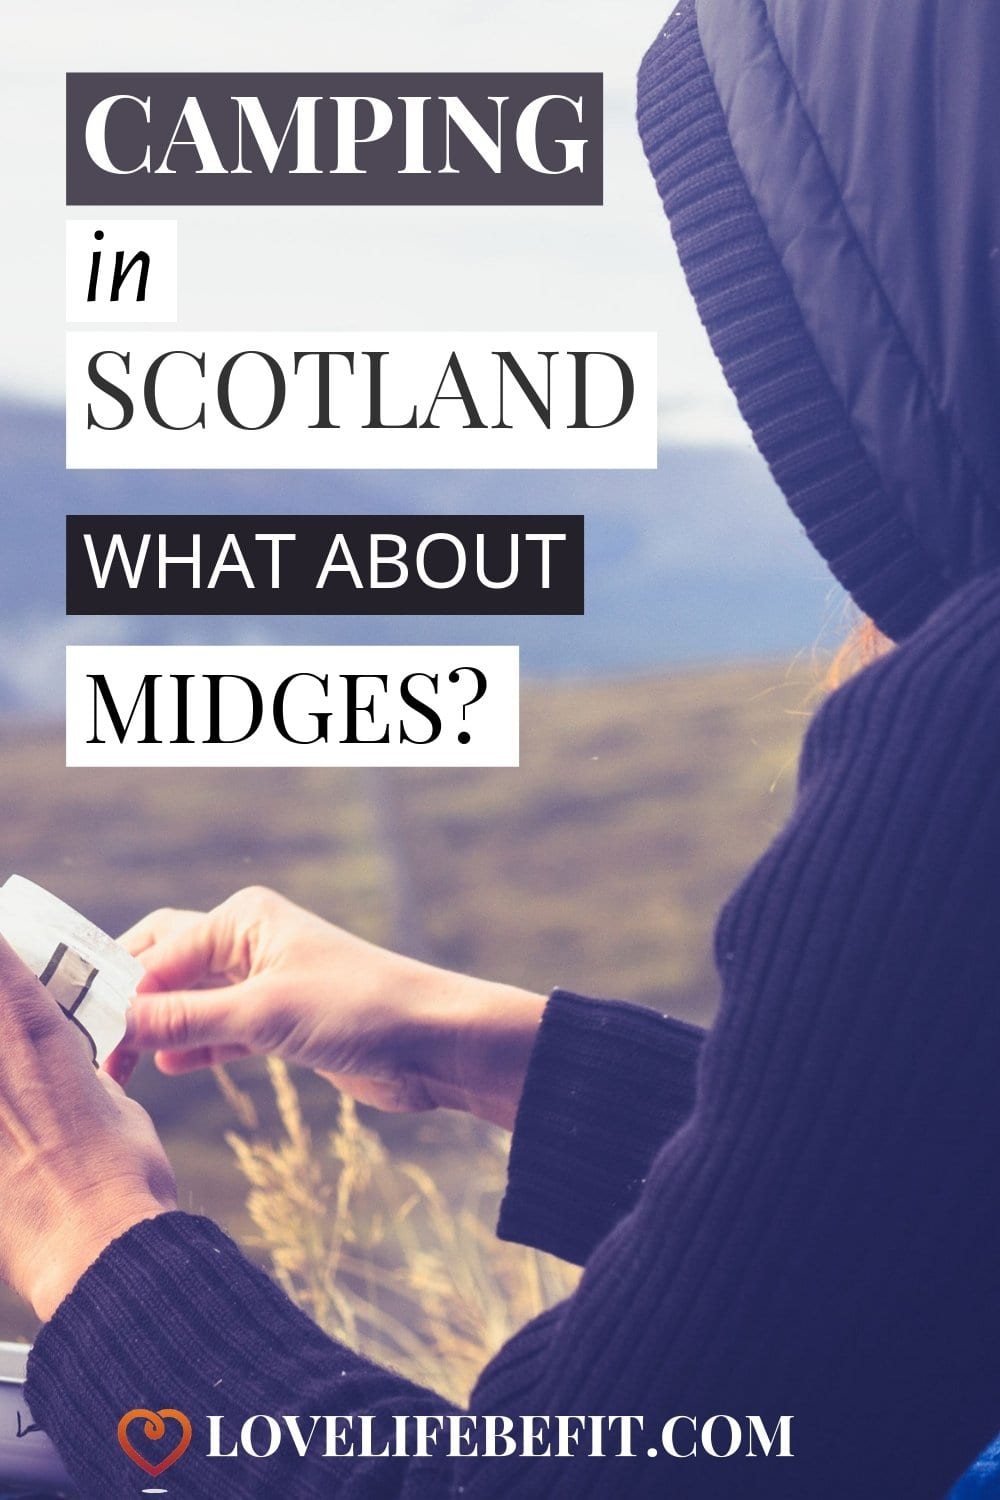 I have a rule about no camping in Scotland in midge season but sometimes rules have to be broken. Here are my tips to survive camping with midges! #midges #midgesinscotland